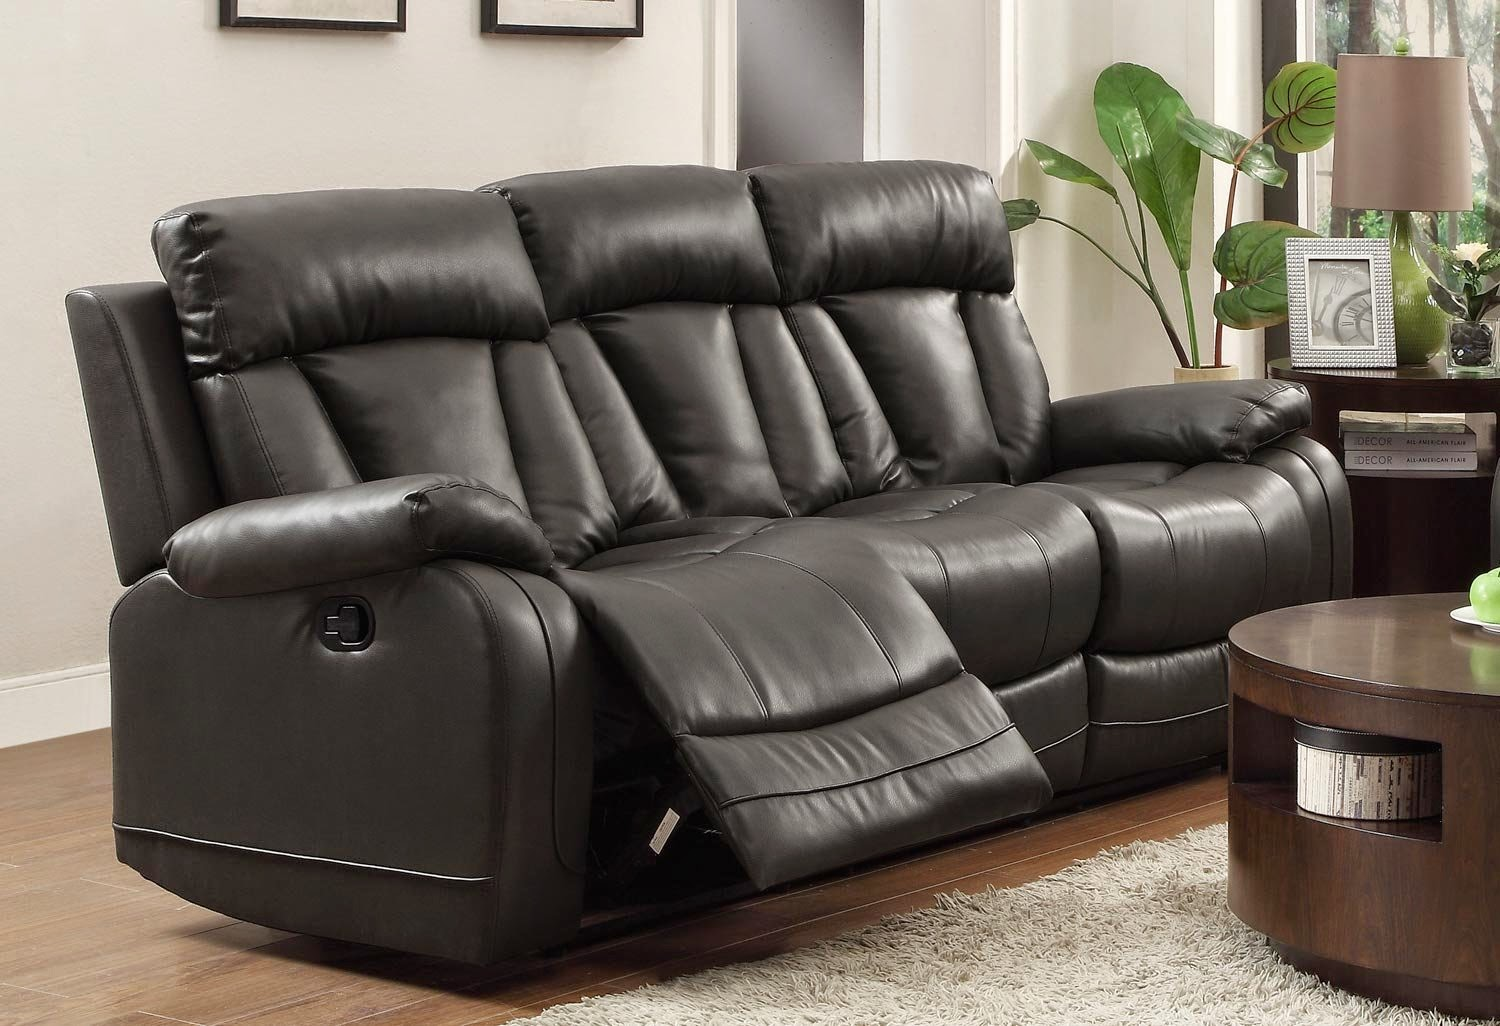 sofas reclining loveseats reclining sofas loveseats broyhill. Black Bedroom Furniture Sets. Home Design Ideas